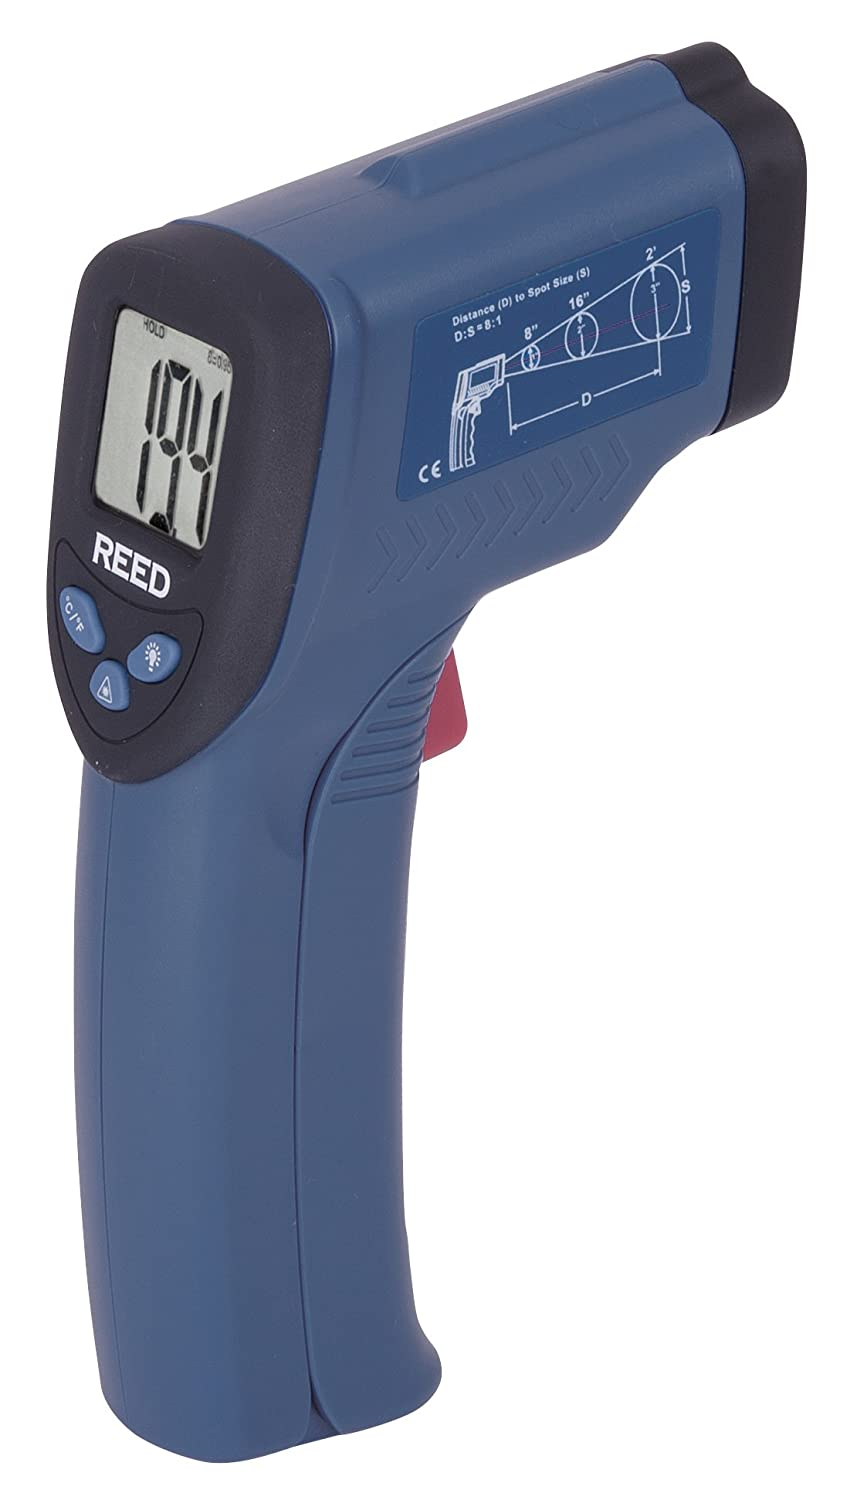 REED Instruments R2001 Infrared Thermometer, 8:1, 536° F (280° C) TIANJIN CHEERMAN TECHNOLOGY